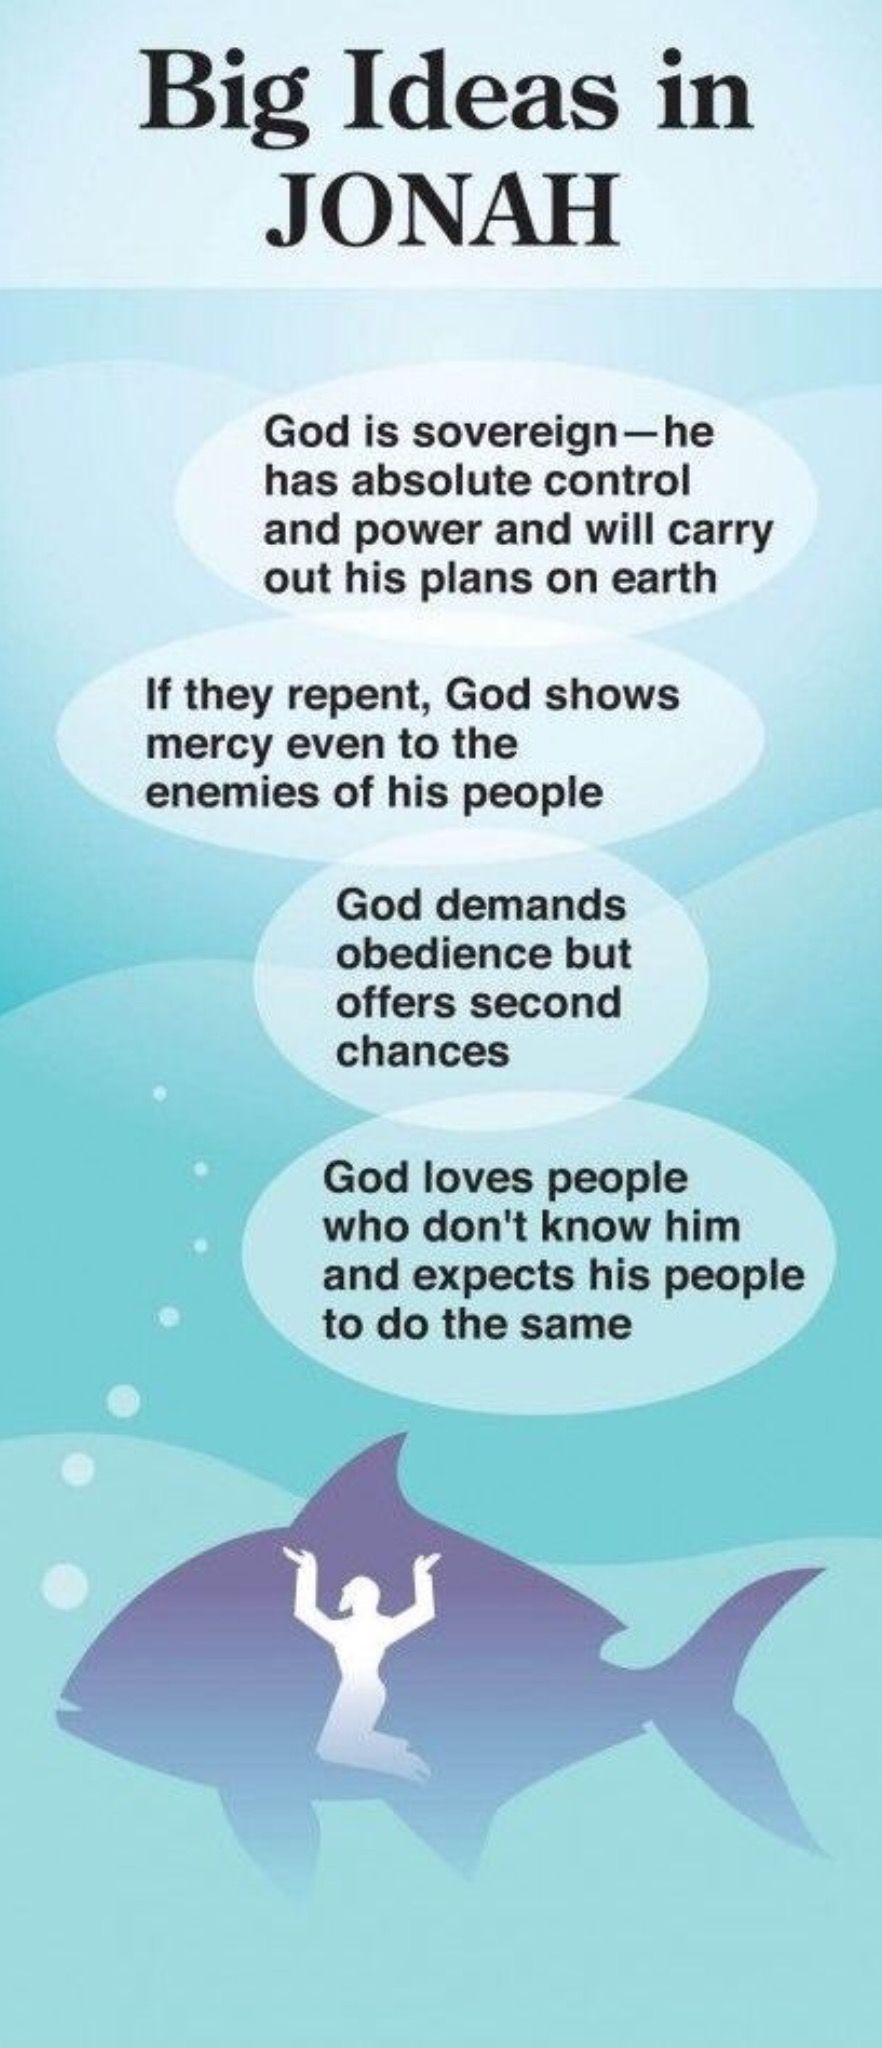 Big ideas in jonah online bible study bible facts